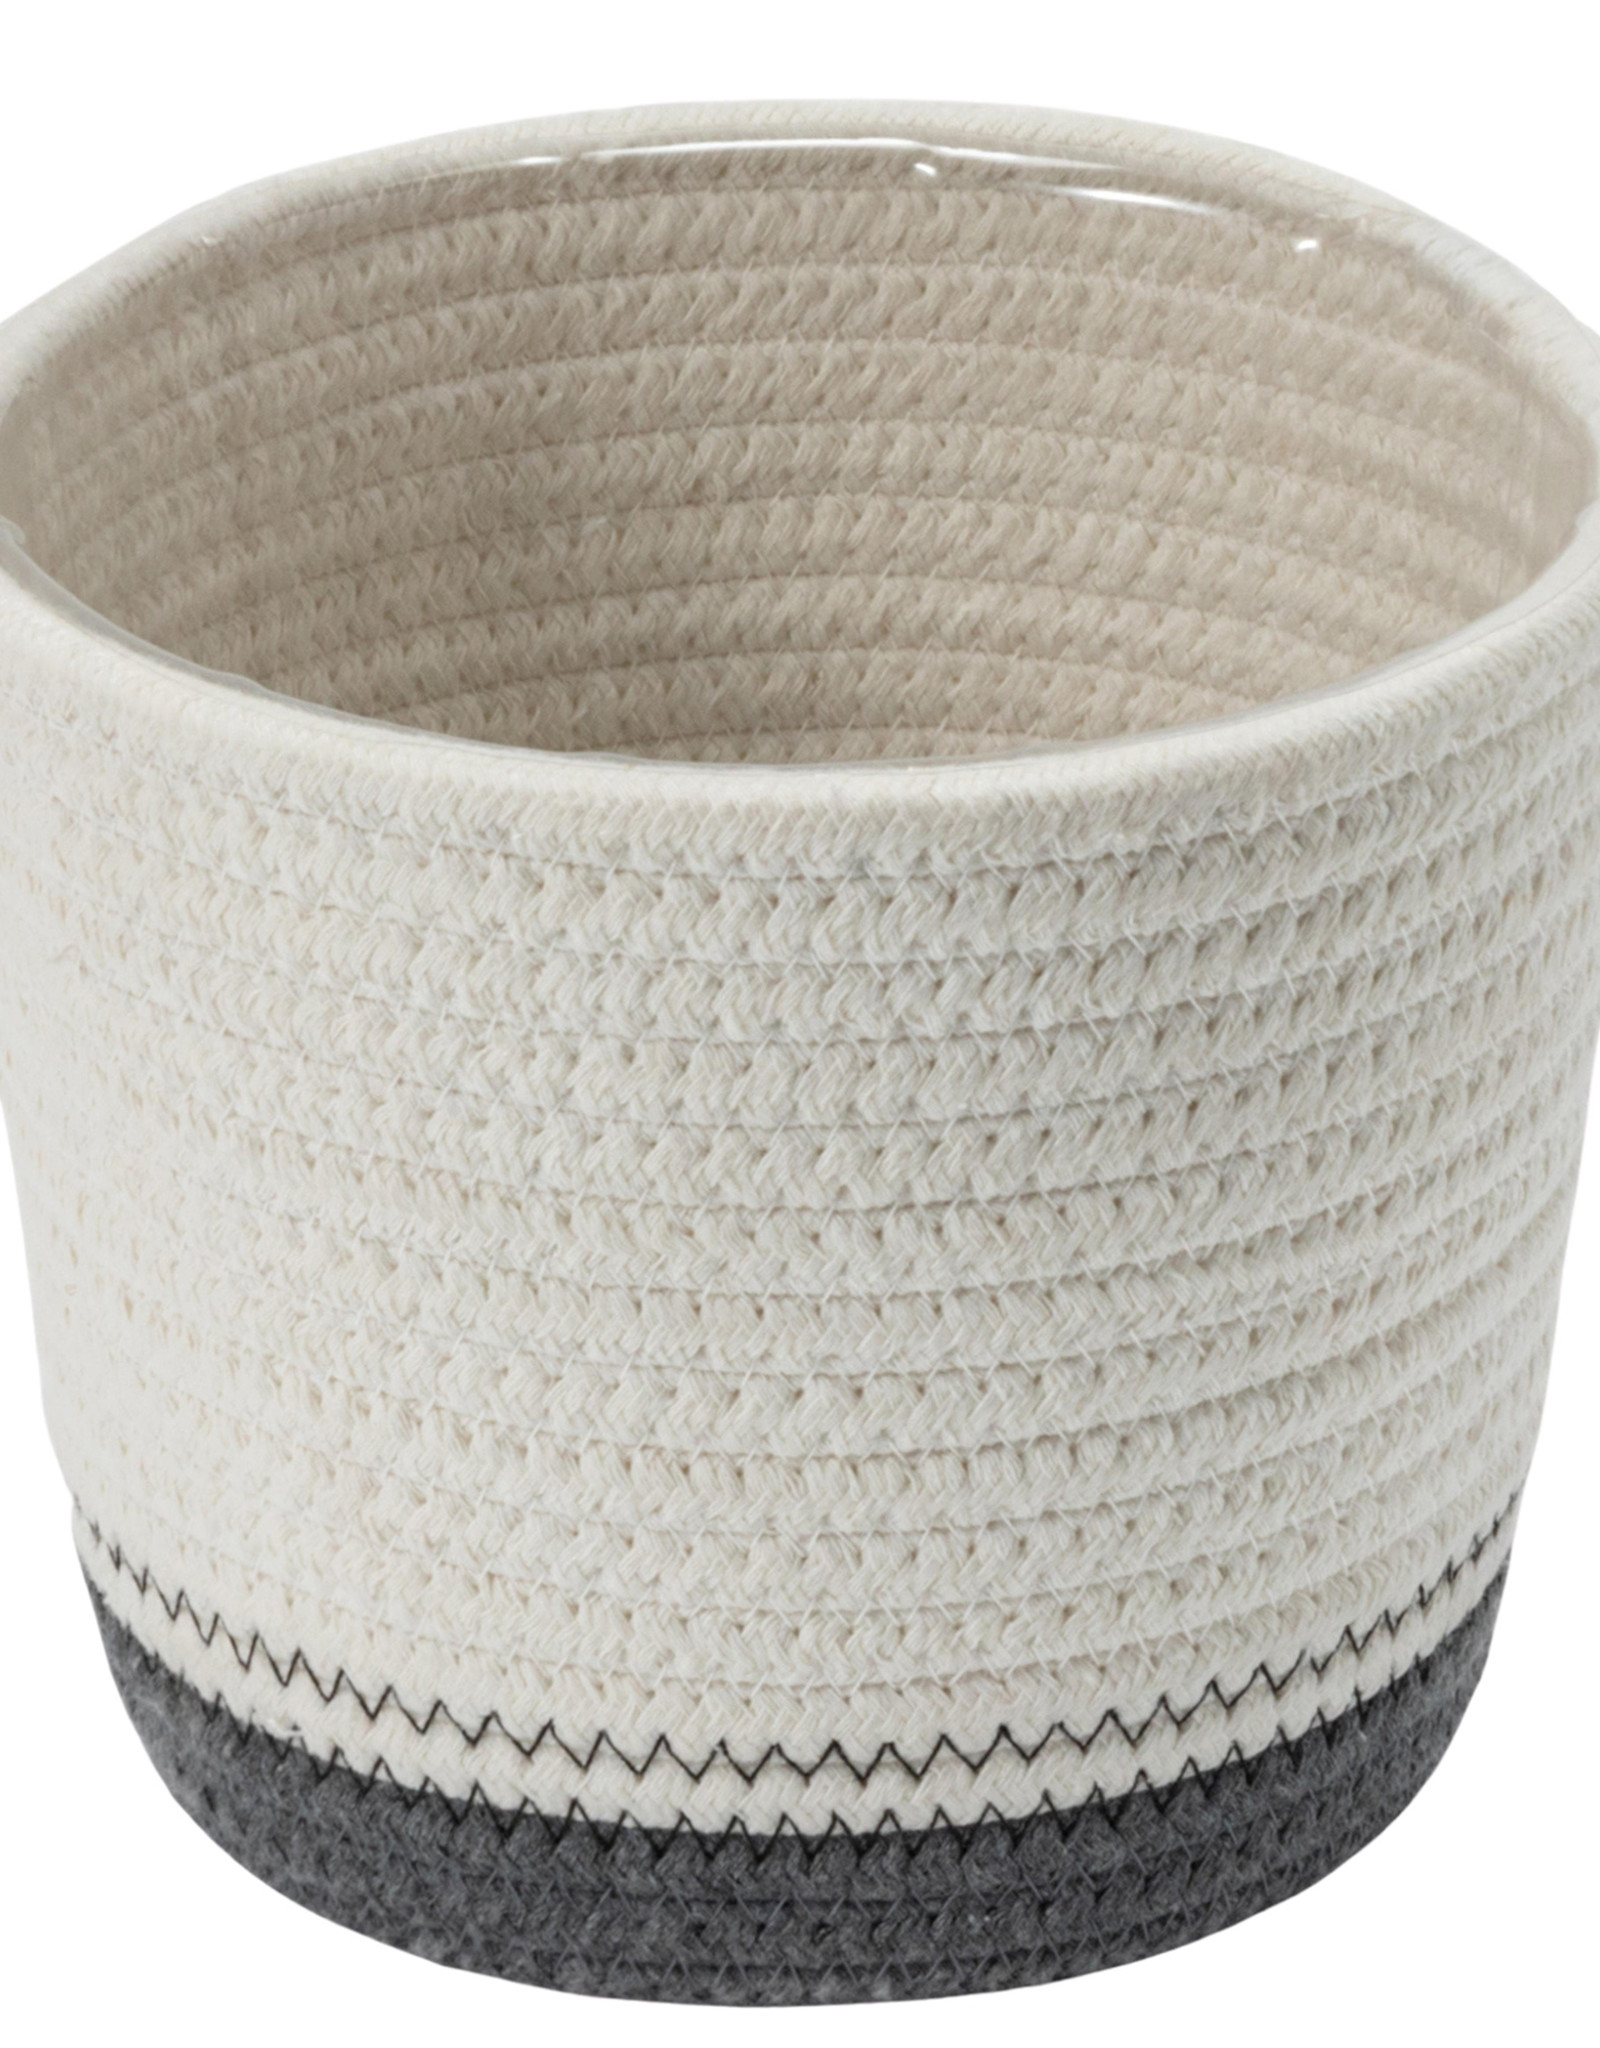 """Cathay Planter Cathay White/Grey Cotton Rope 5.25"""" D 08-2001"""